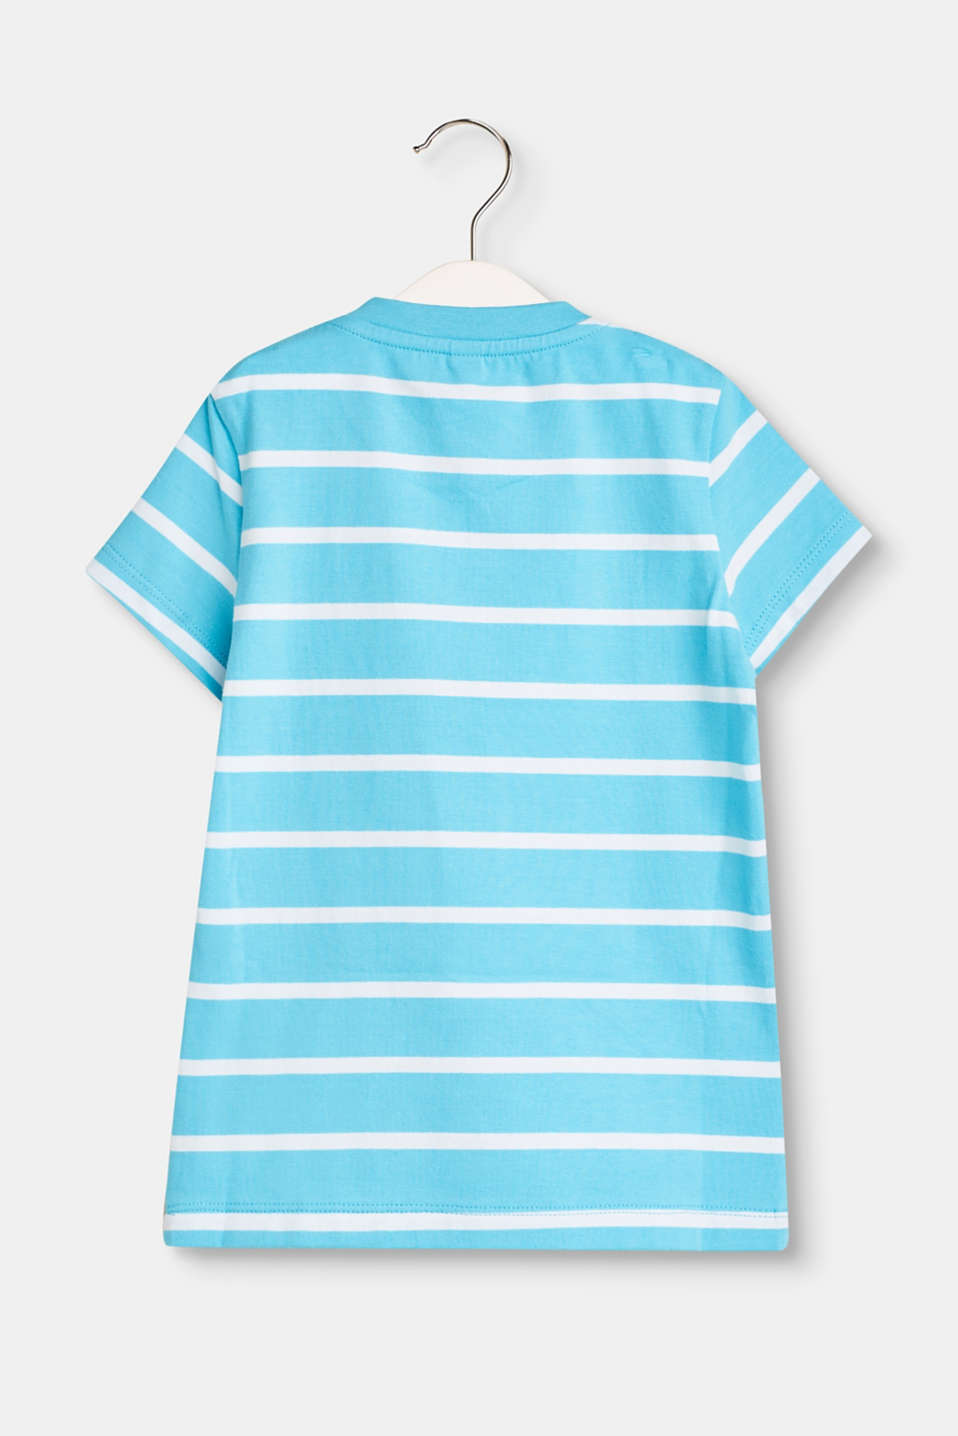 Basic striped T-shirt with stretch for comfort